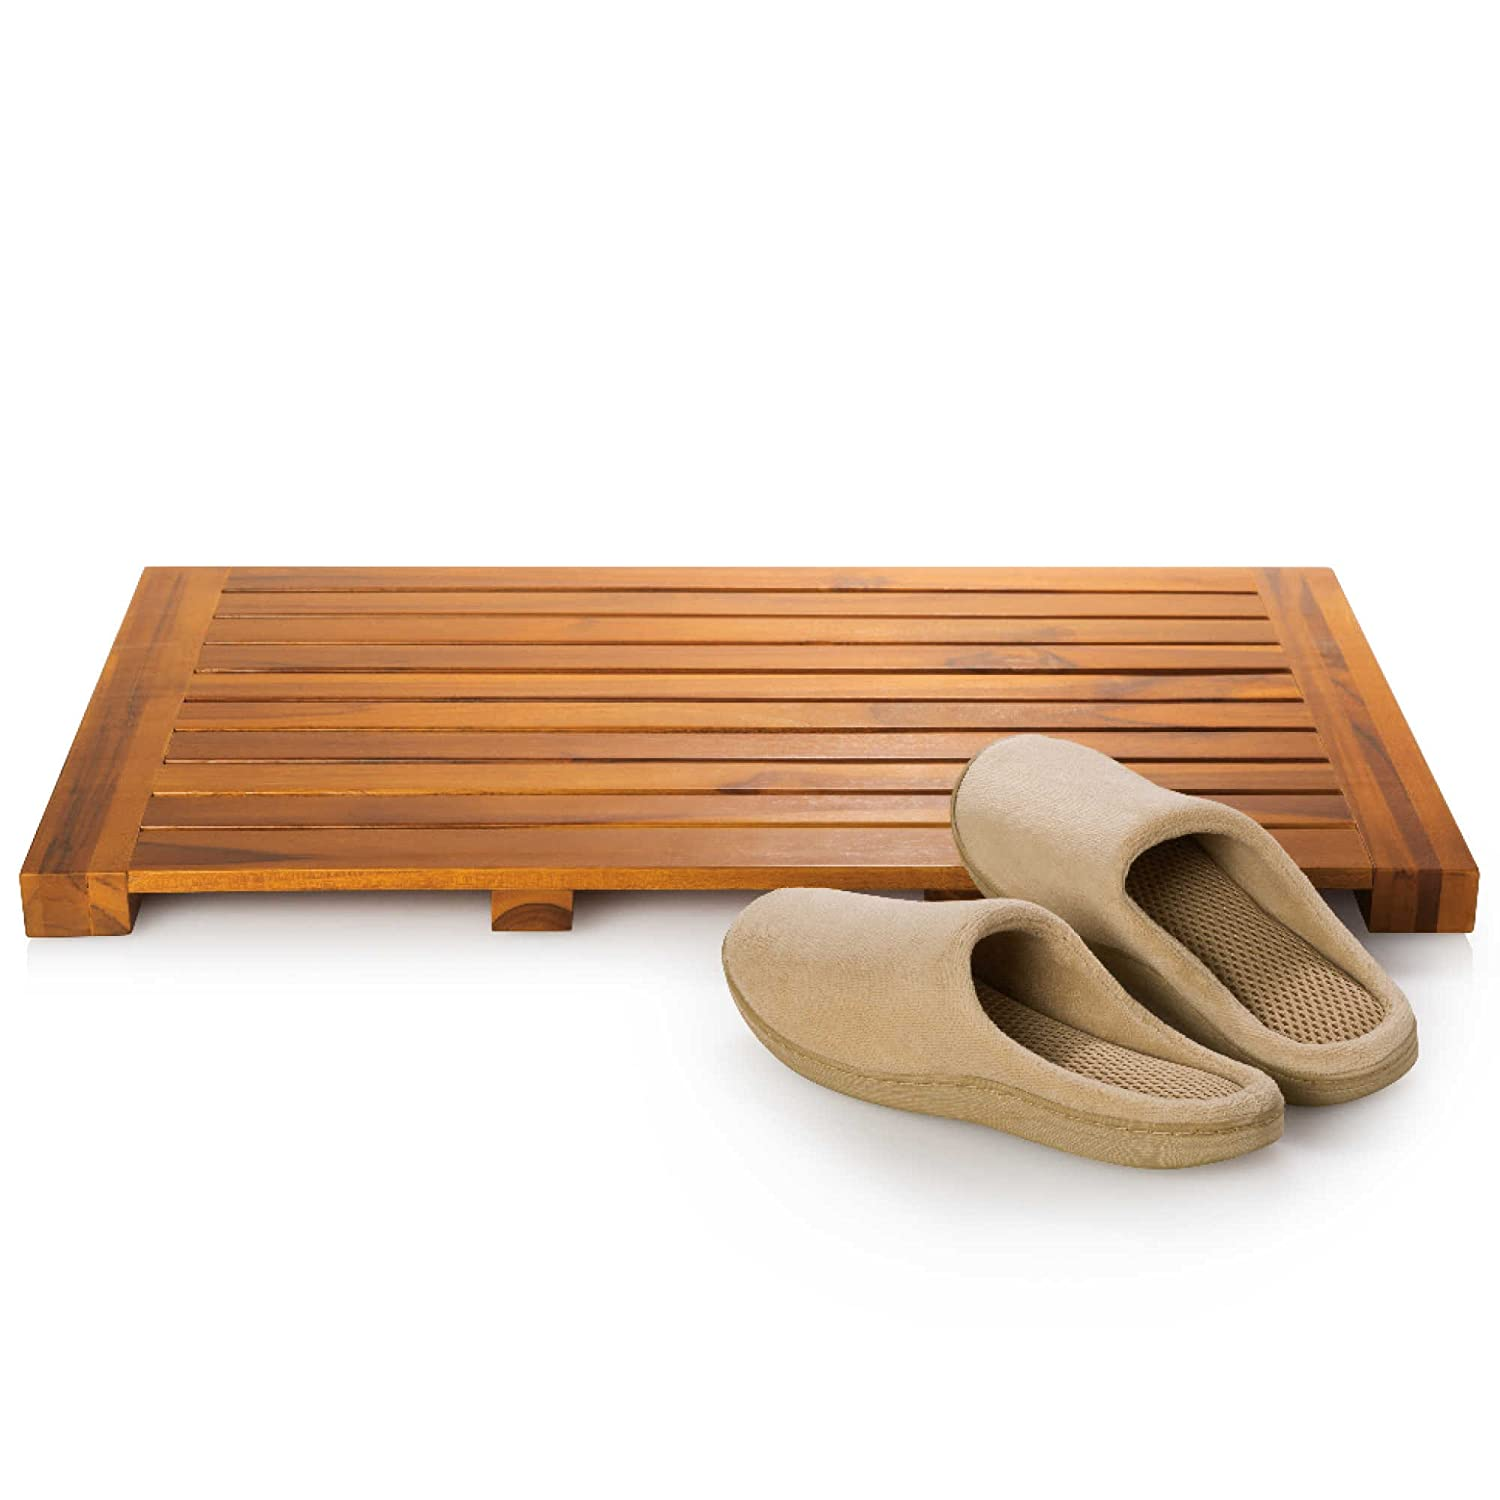 Taymor Teak Bath Mat Solid Natural Wood Luxury Spa Floor Rug For Bathroom Shower, 24 x 16 Inch